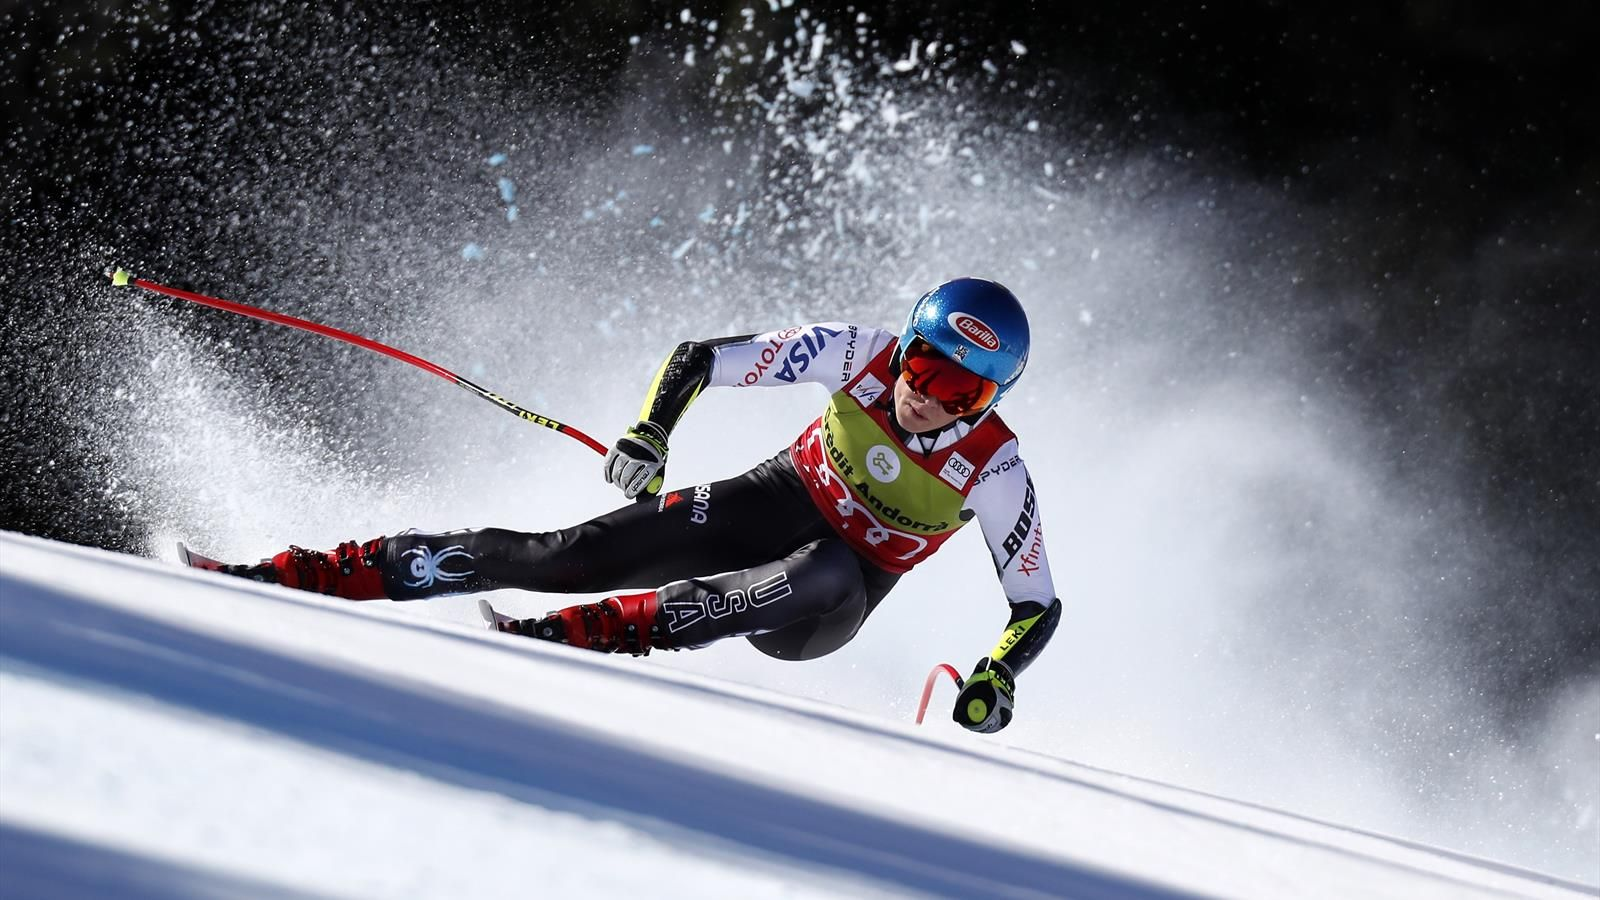 Coupe d'Europe Ski Alpin 2021